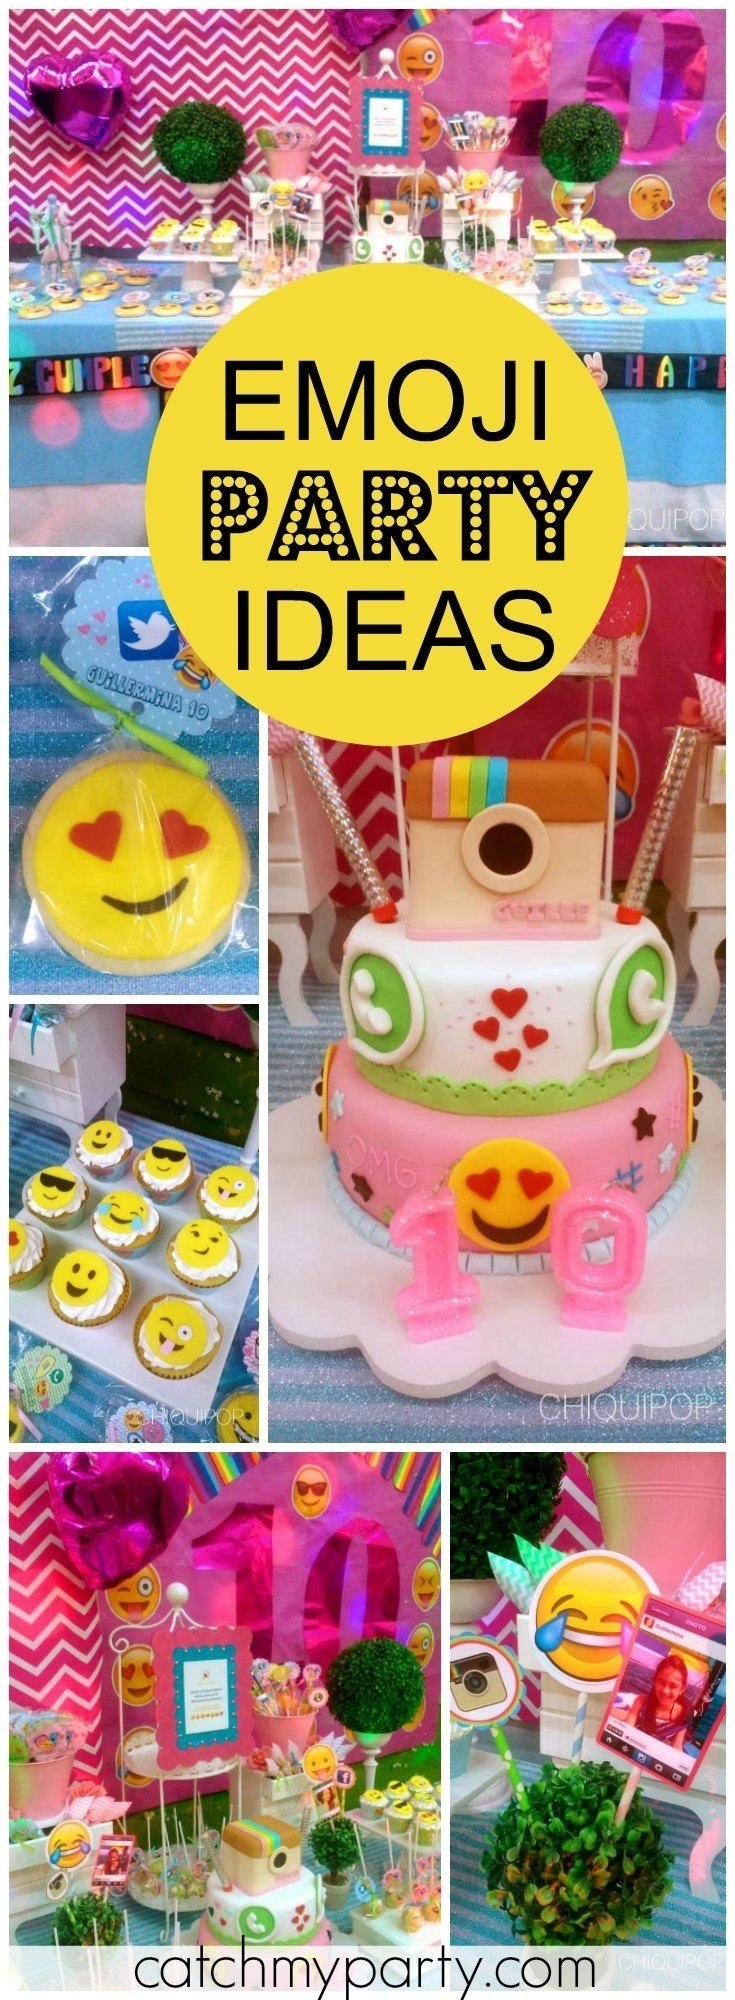 10 Most Popular 12Th Birthday Party Ideas For Girls 12 best thirteenth birthday images on pinterest birthdays party 2 2021